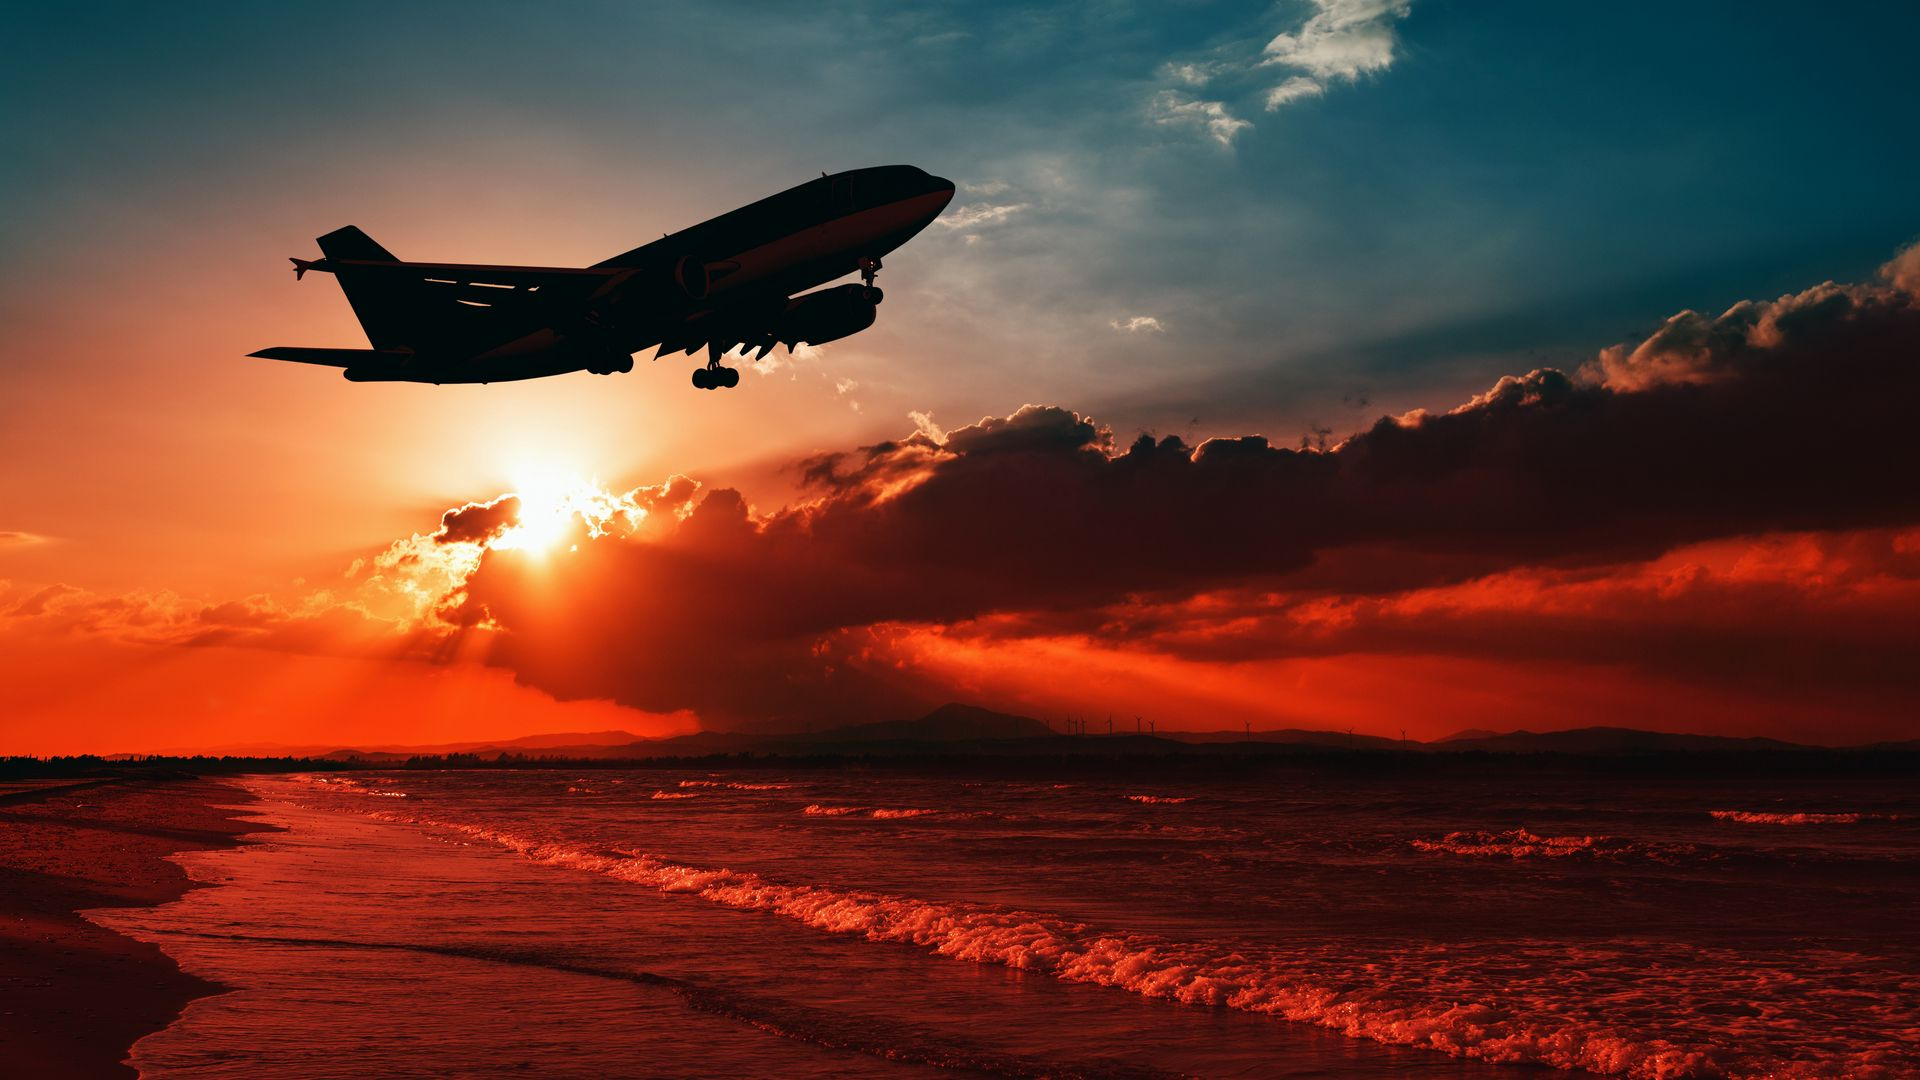 Airplane, Sea, Sunset Wallpapers Free Download